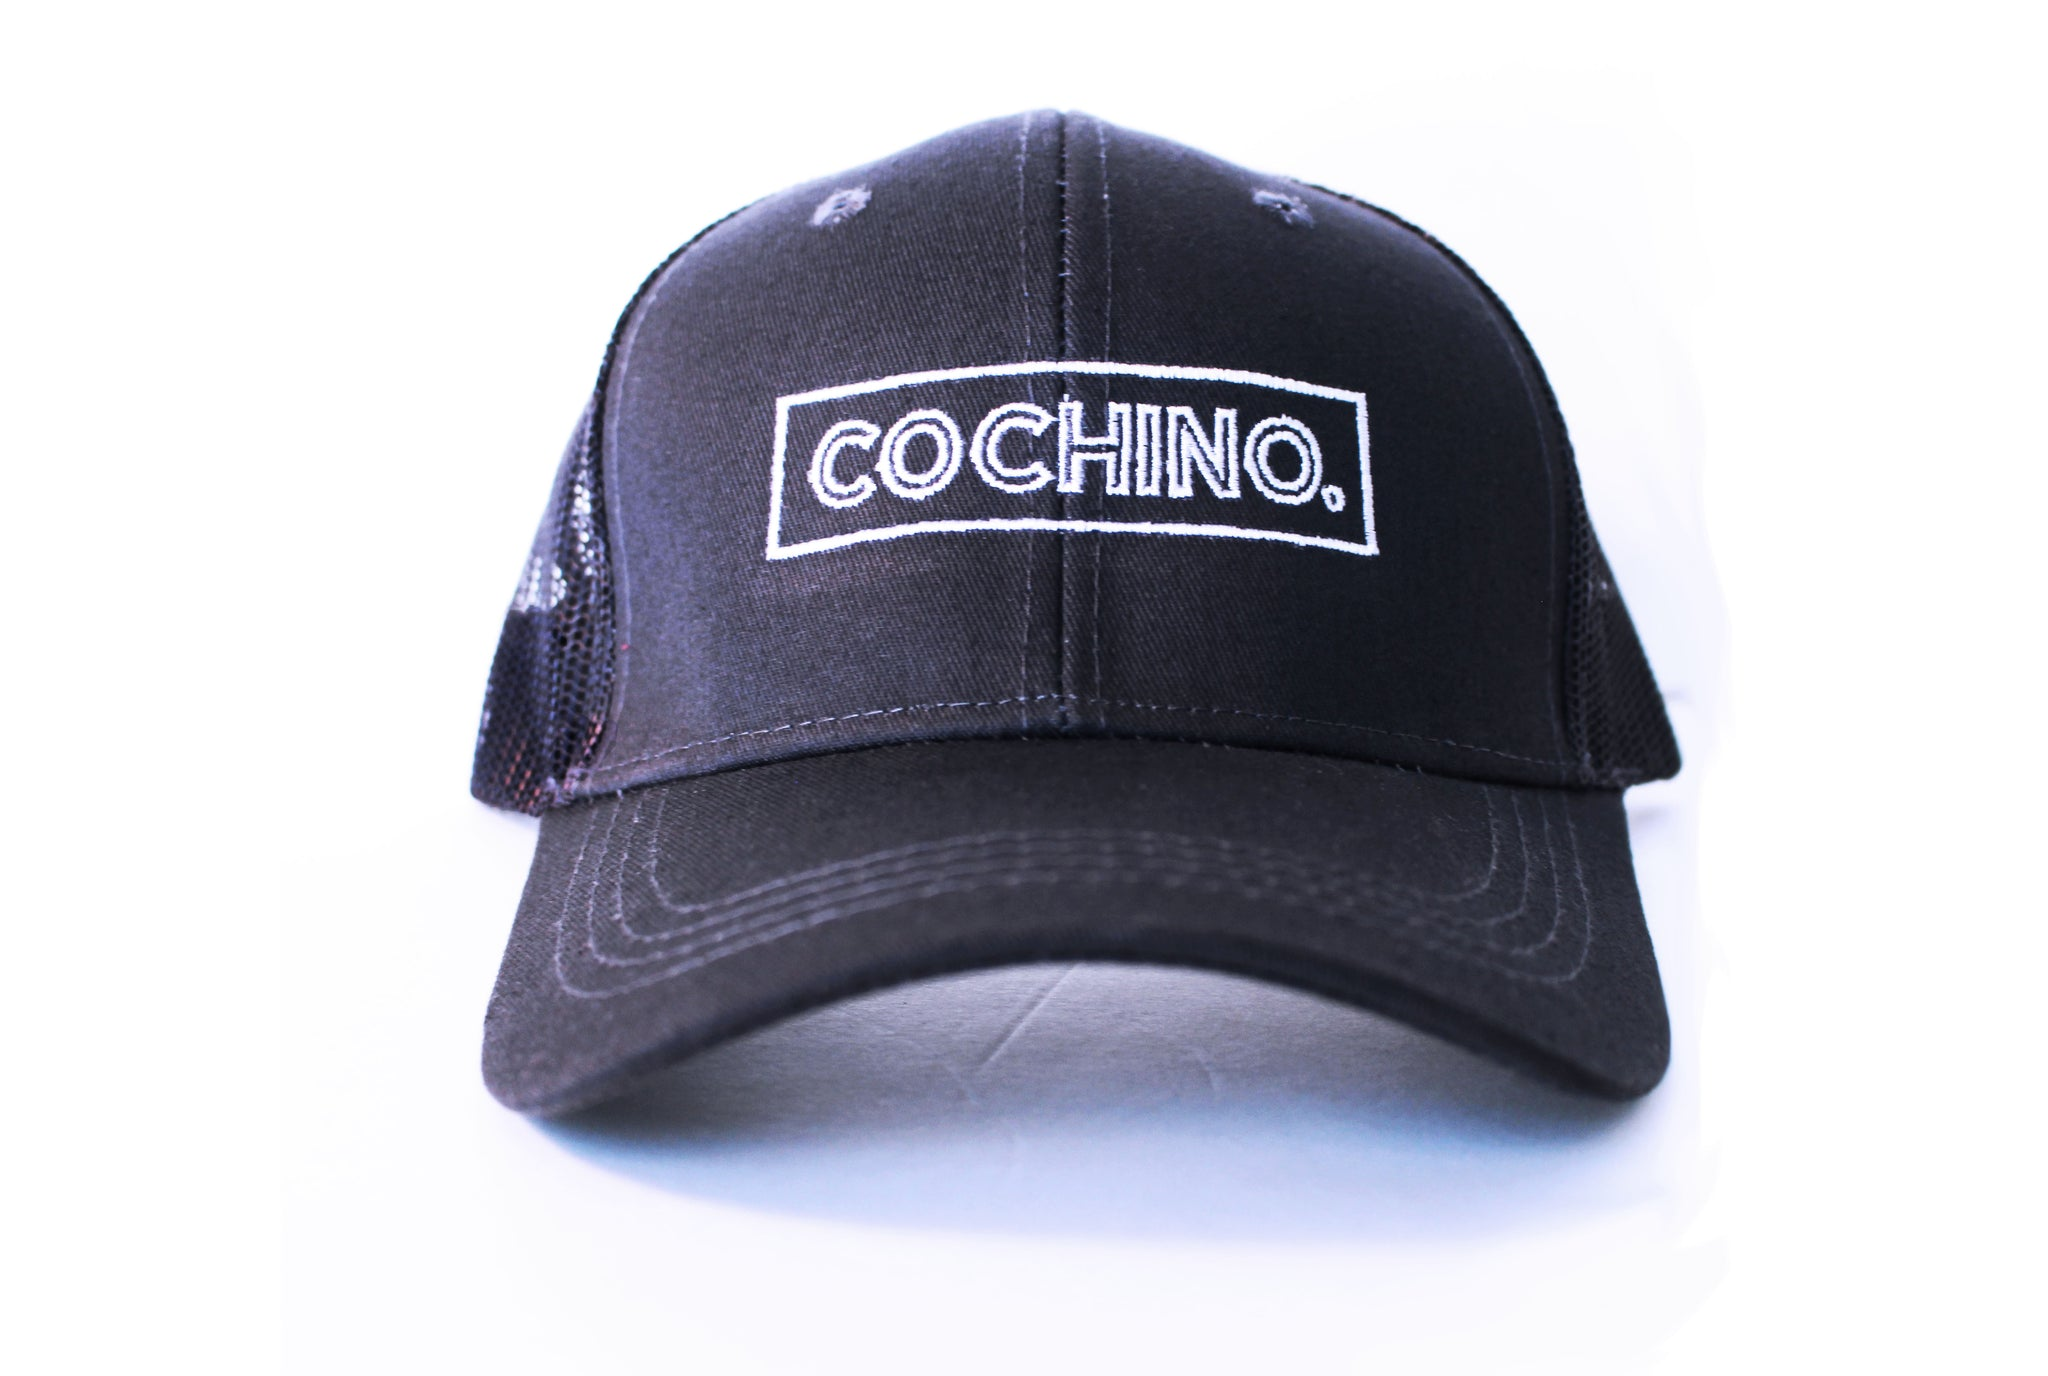 Cochino Curved Brim Hat with Small Logo - in Black